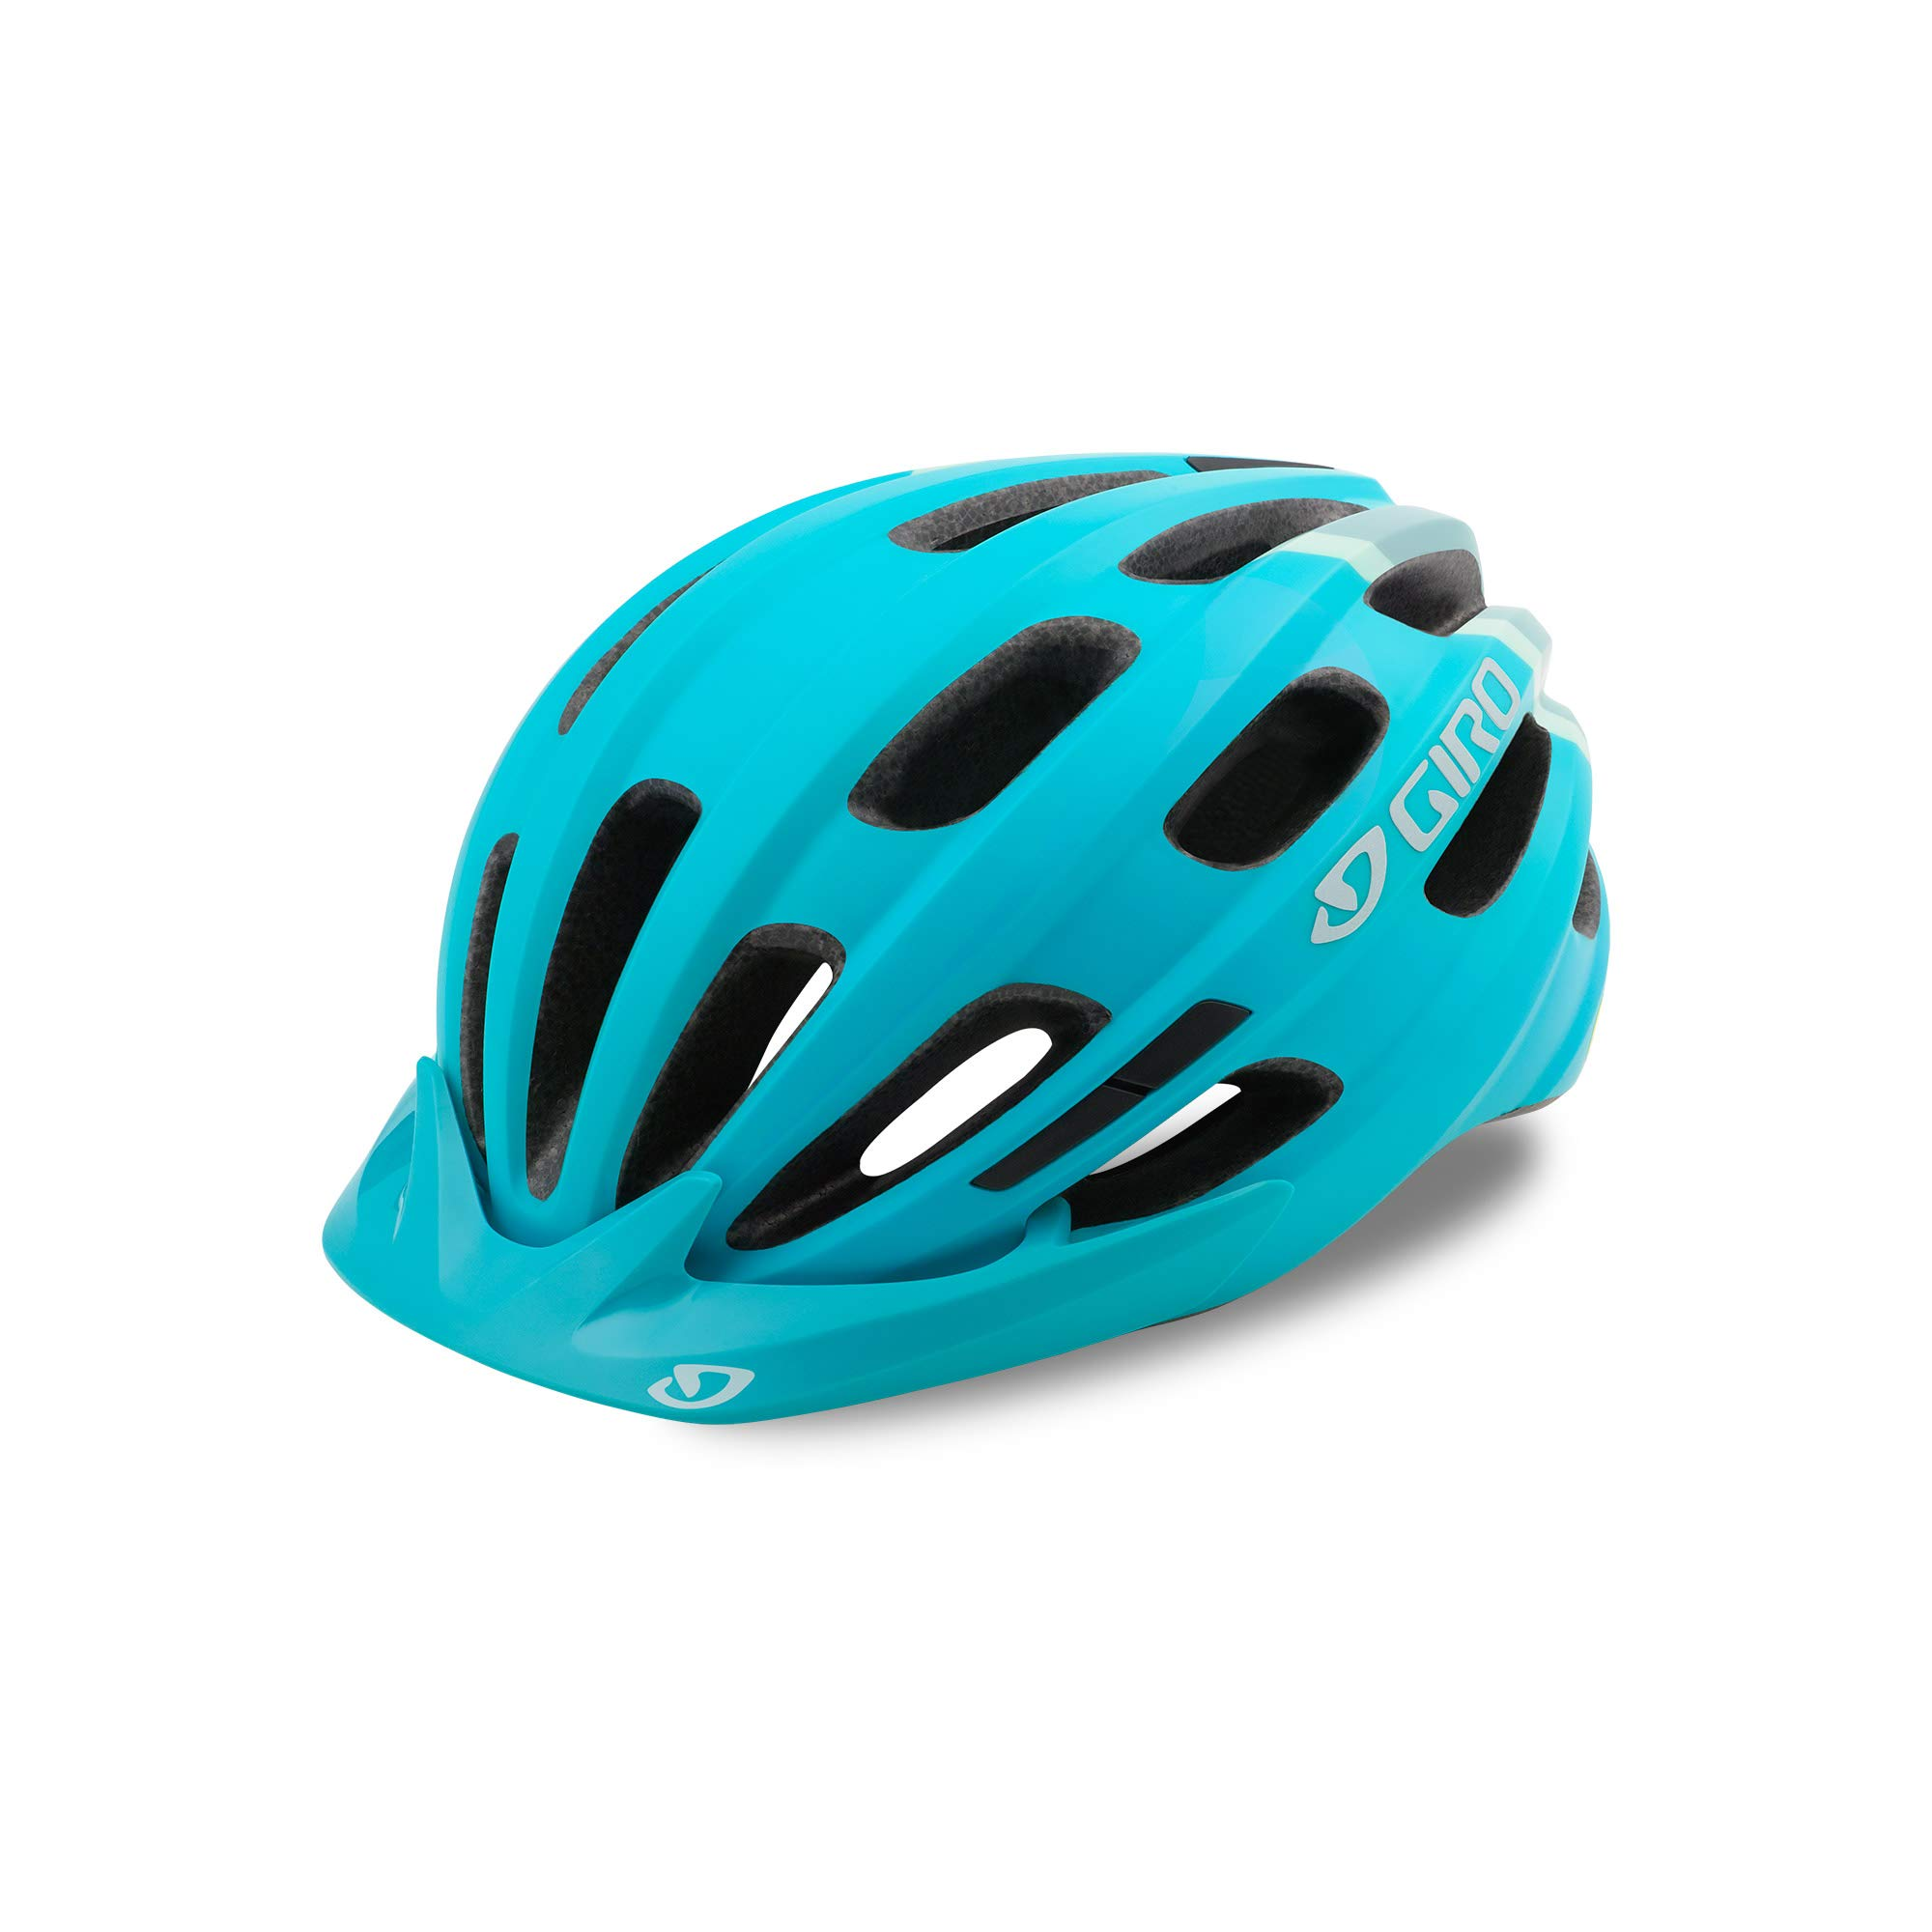 Giro Hale MIPS Youth Visor Bike Cycling Helmet - Universal Youth (50-57 cm), Matte Glacier (2021)